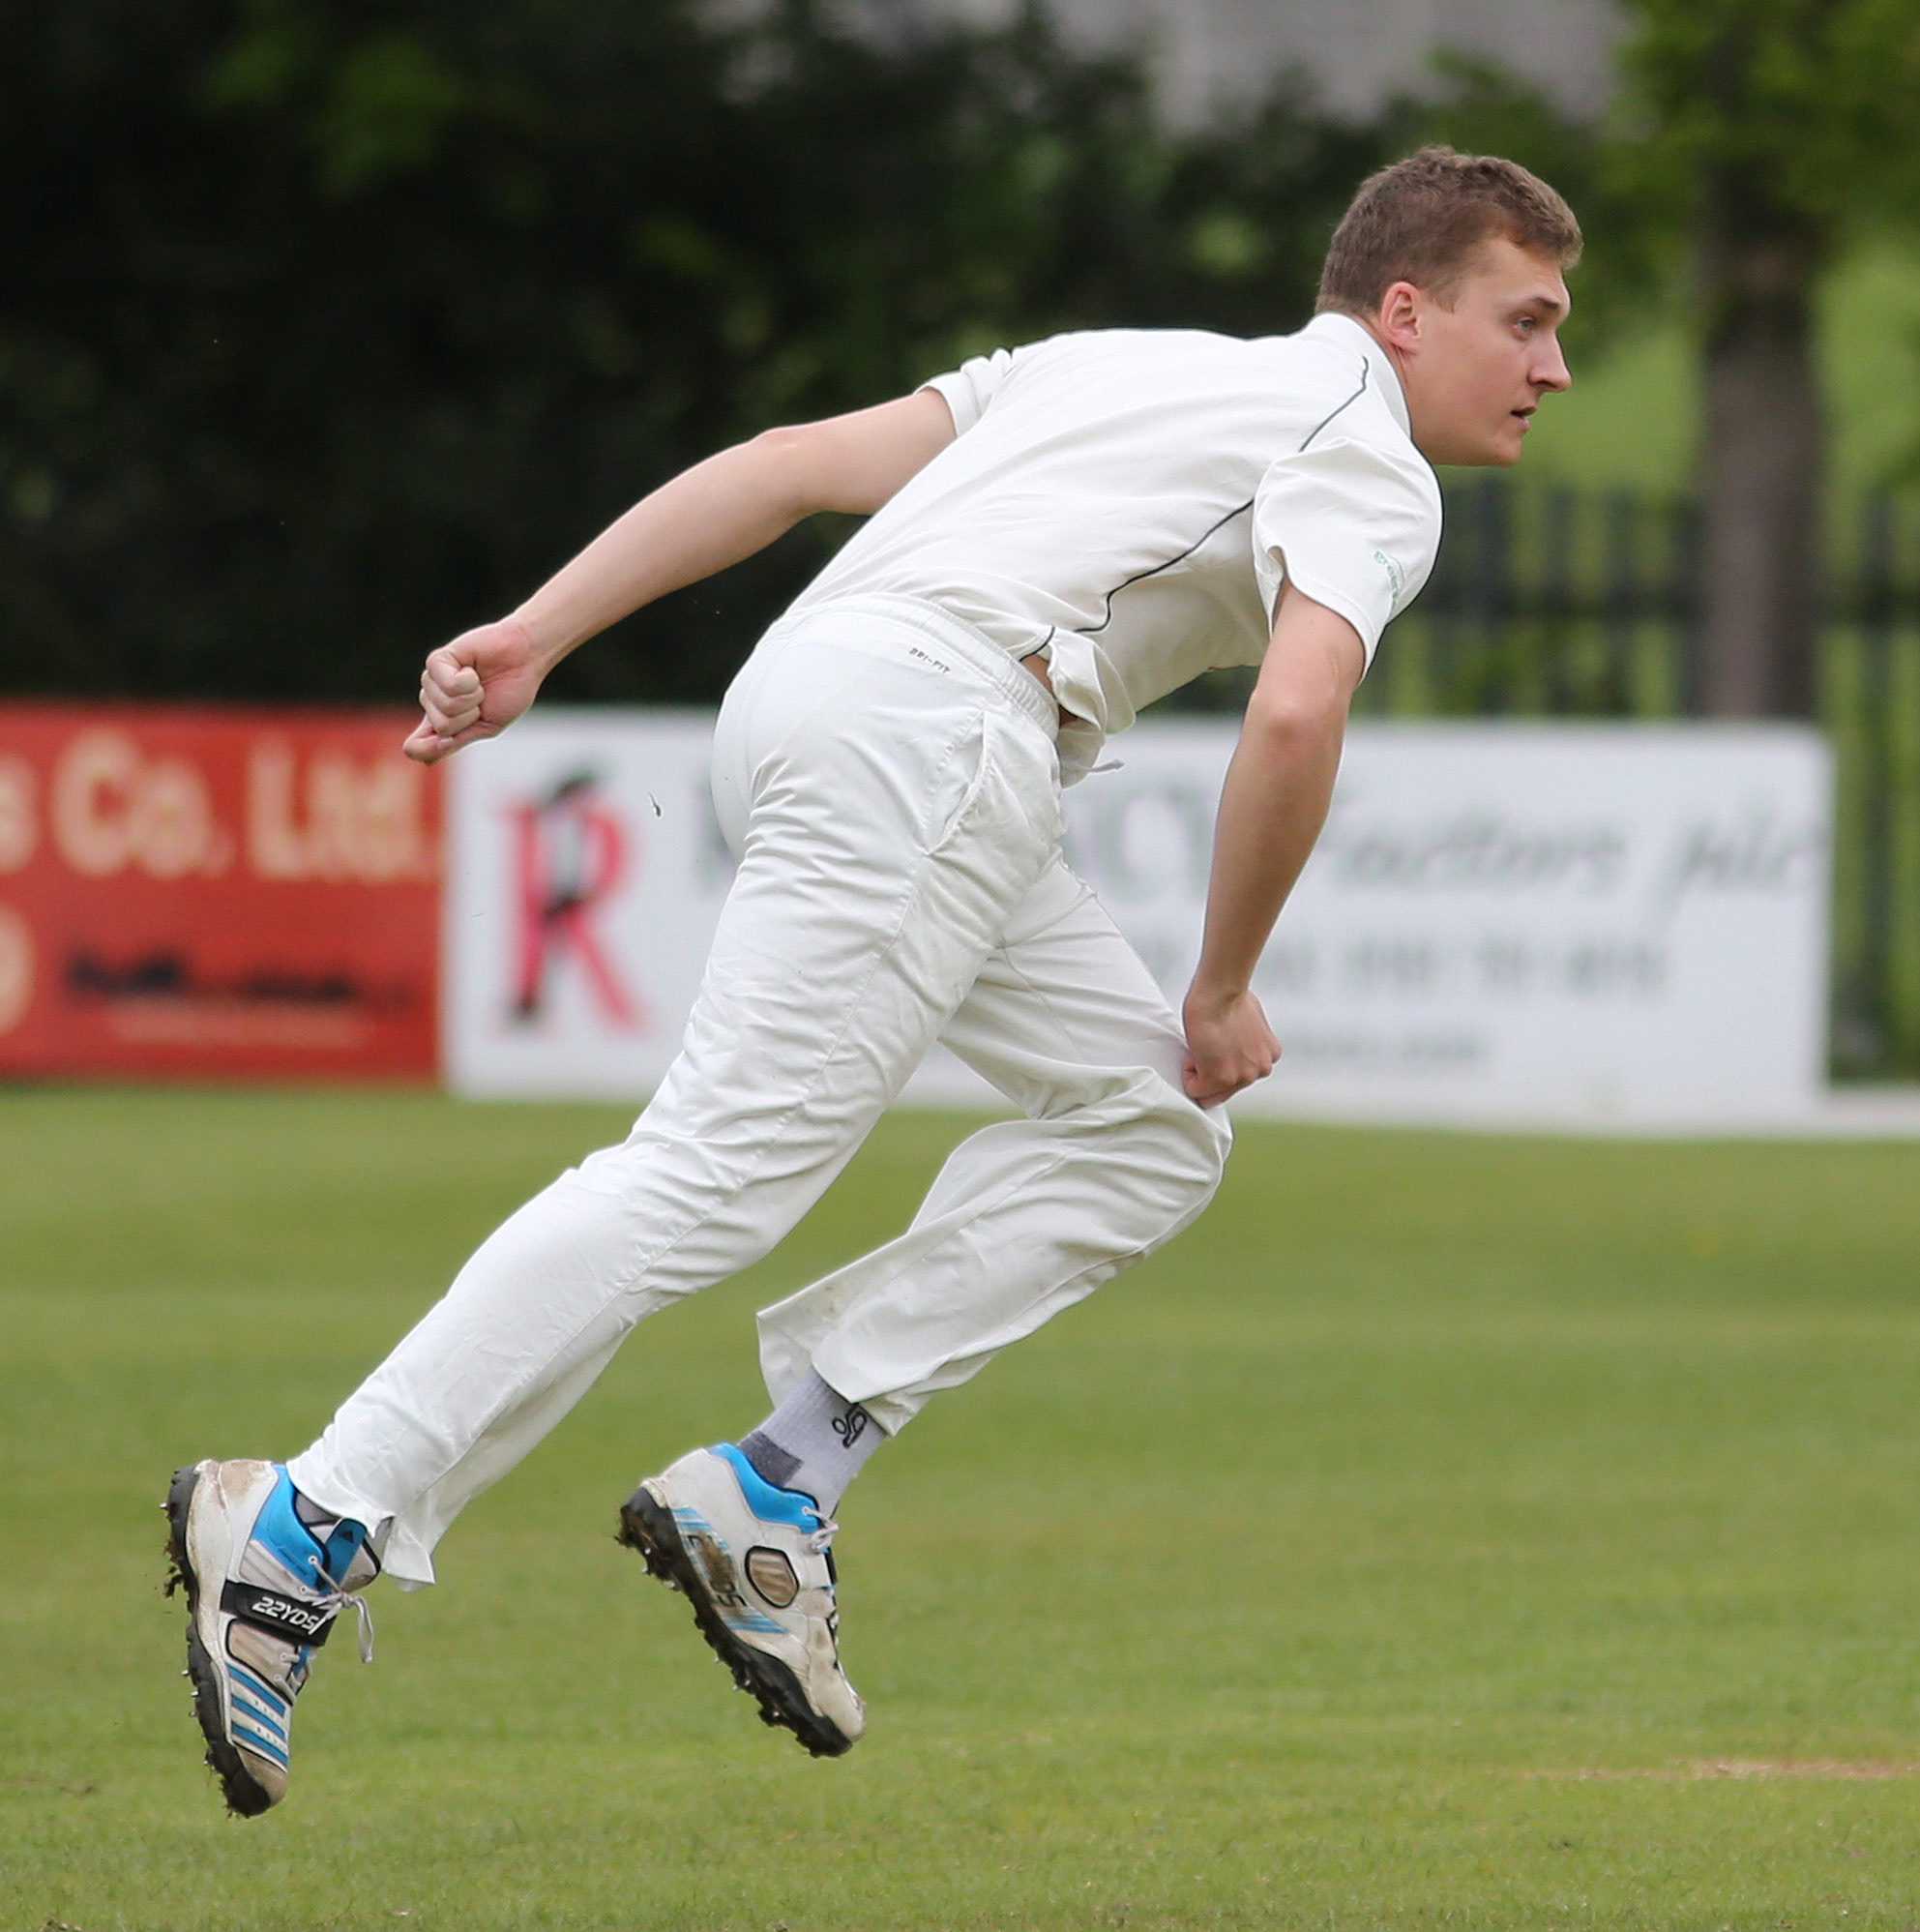 BAT'S THE WAY: Sam Holden's ankle injury means he is out of Prestwich's bowling attack